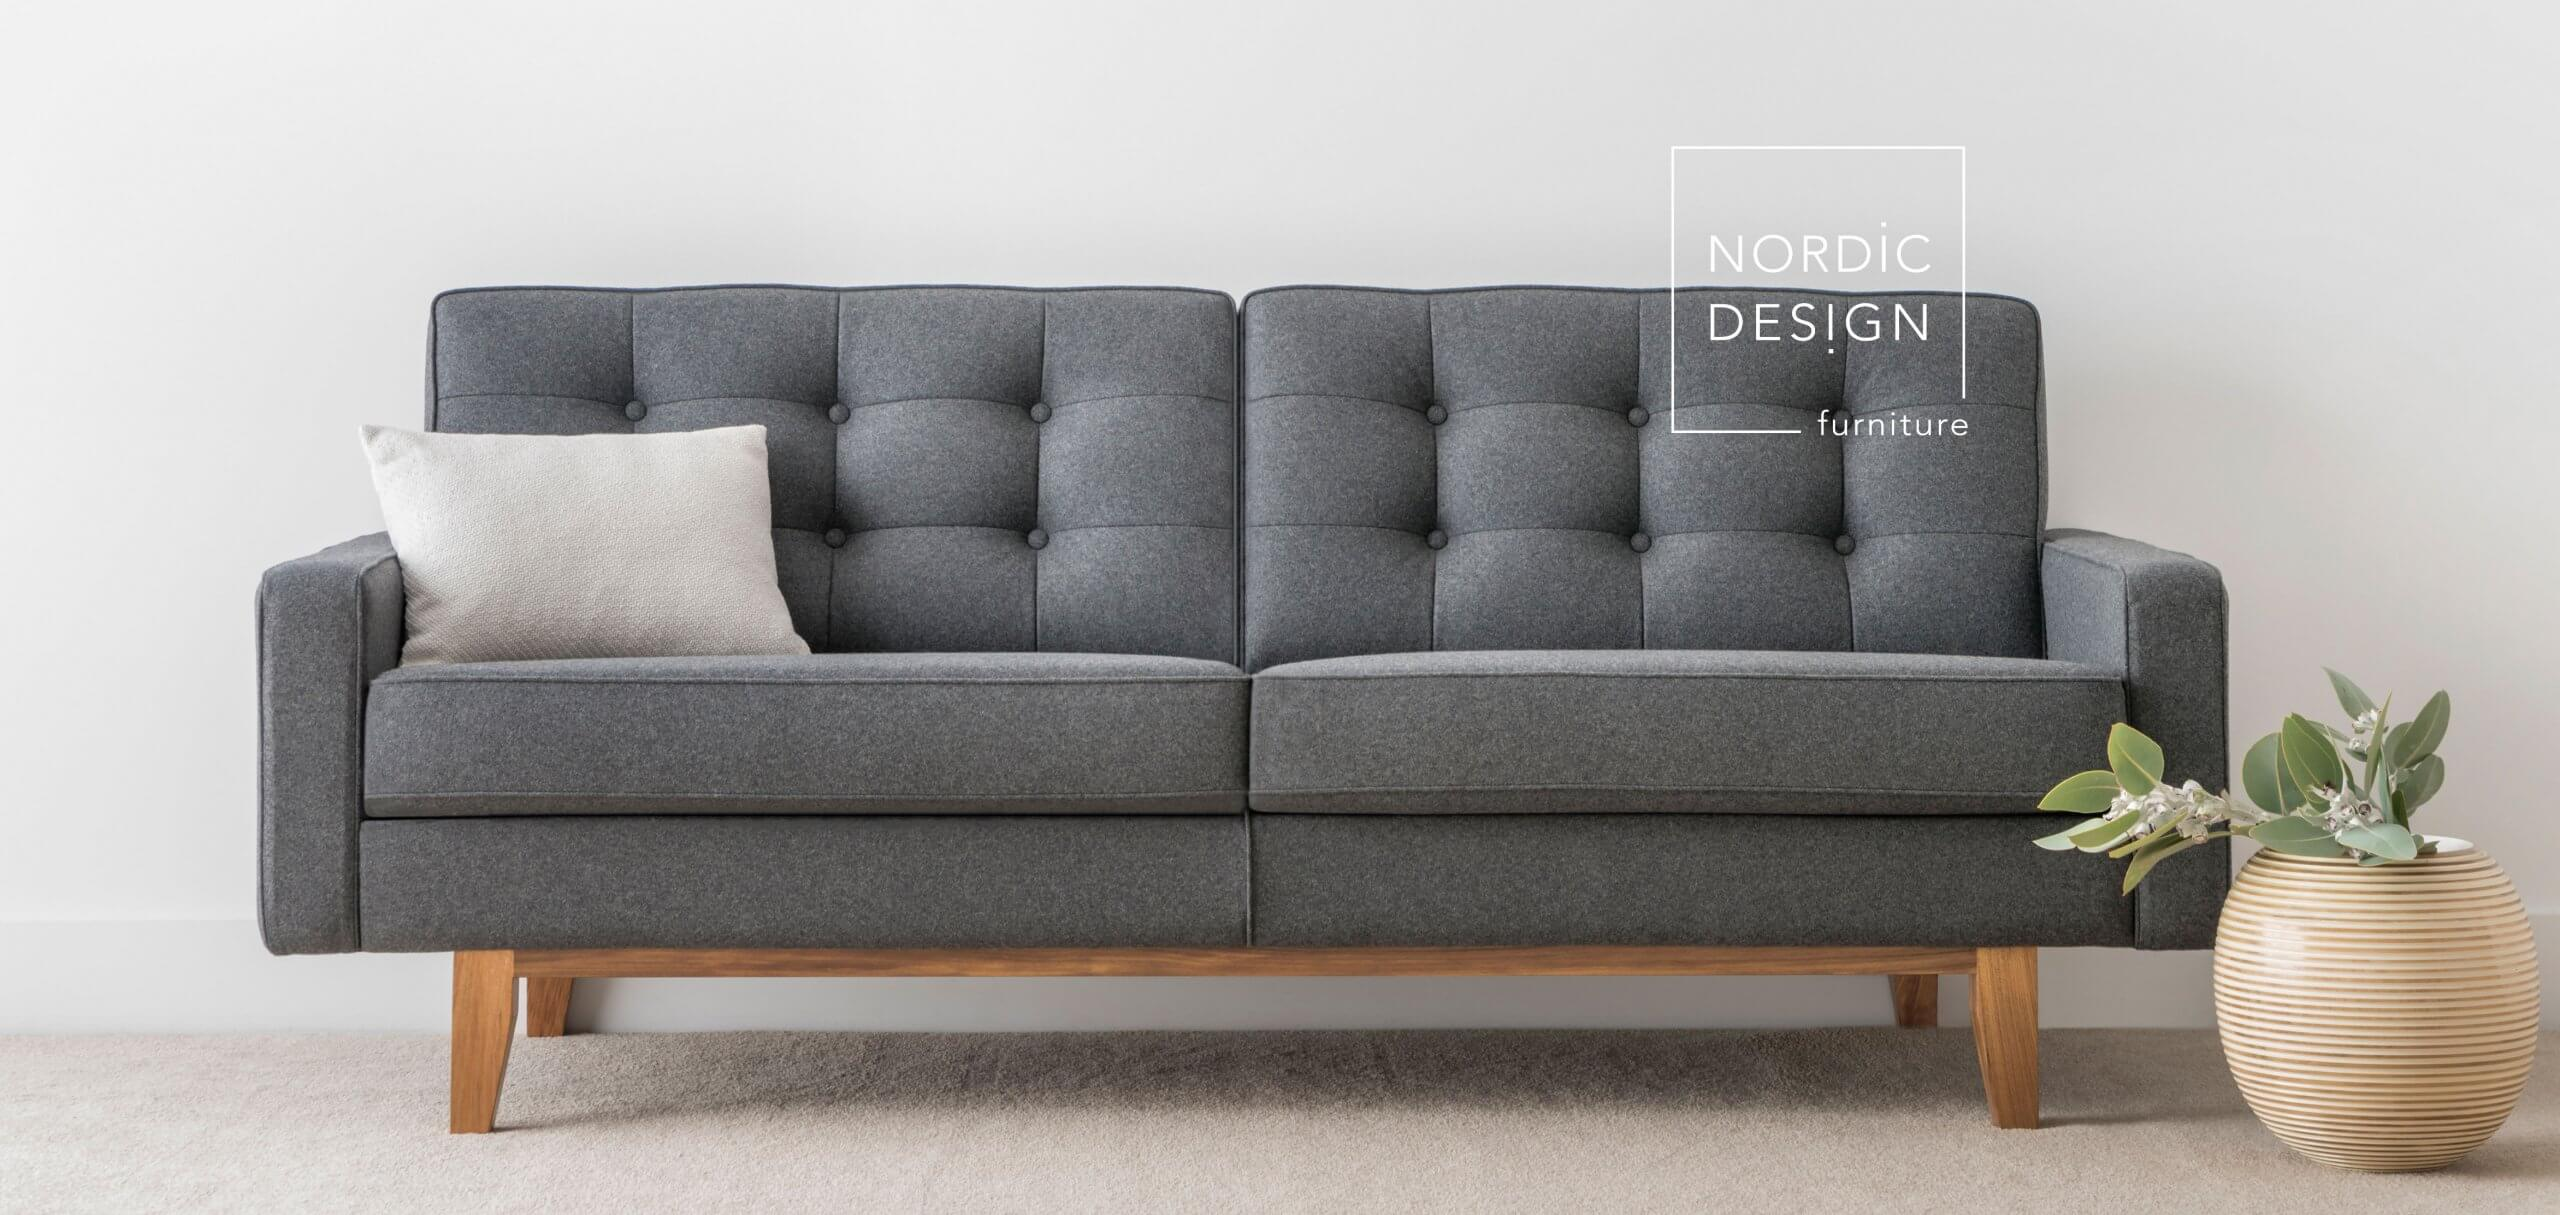 3 seater fabric sofa with button detail and timber legs